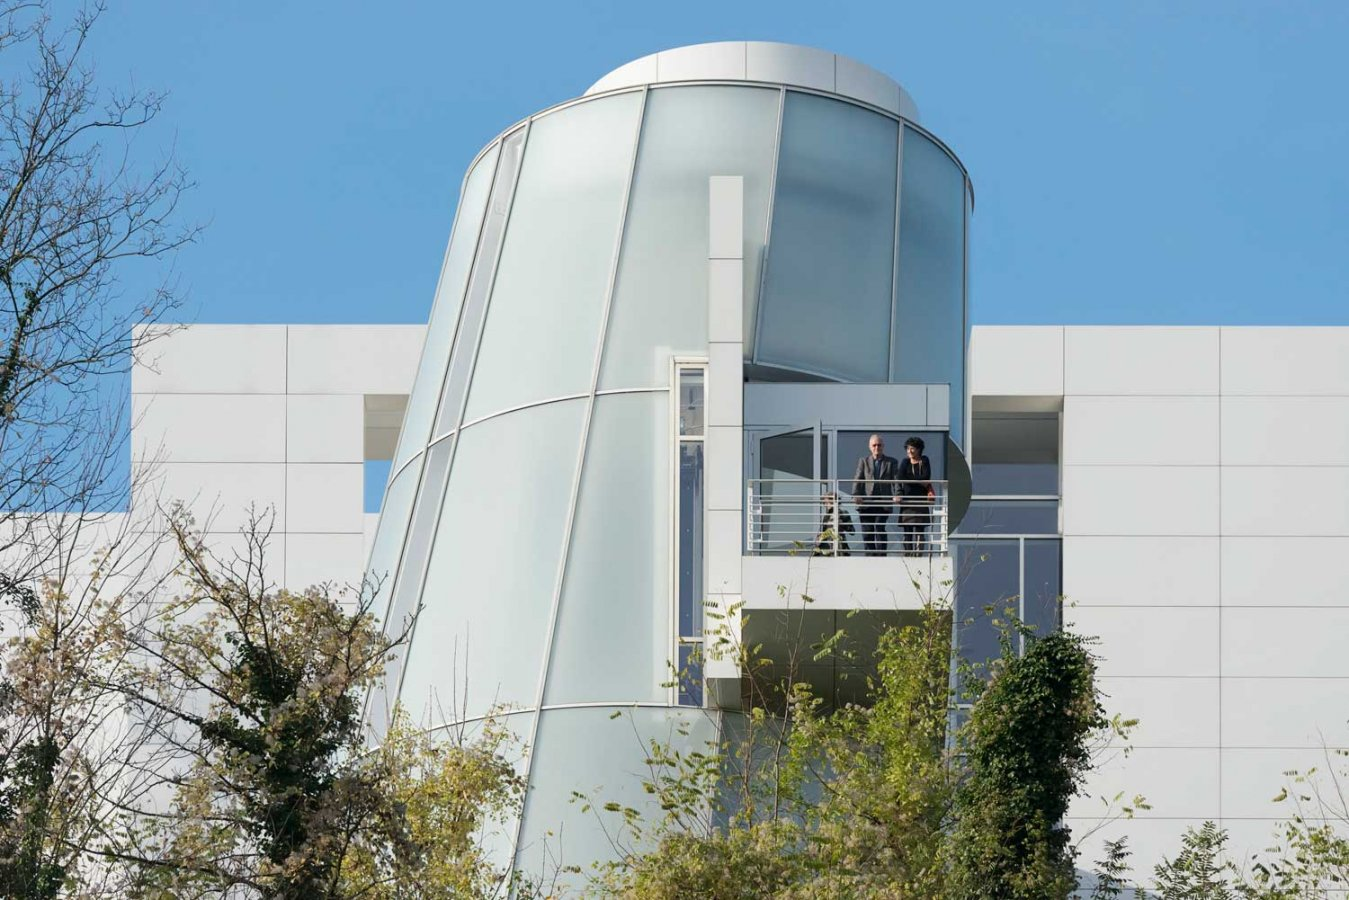 Lift tower of the Richard Meier building © Arp Museum Bahnhof Rolandseck, photo: David Ertl